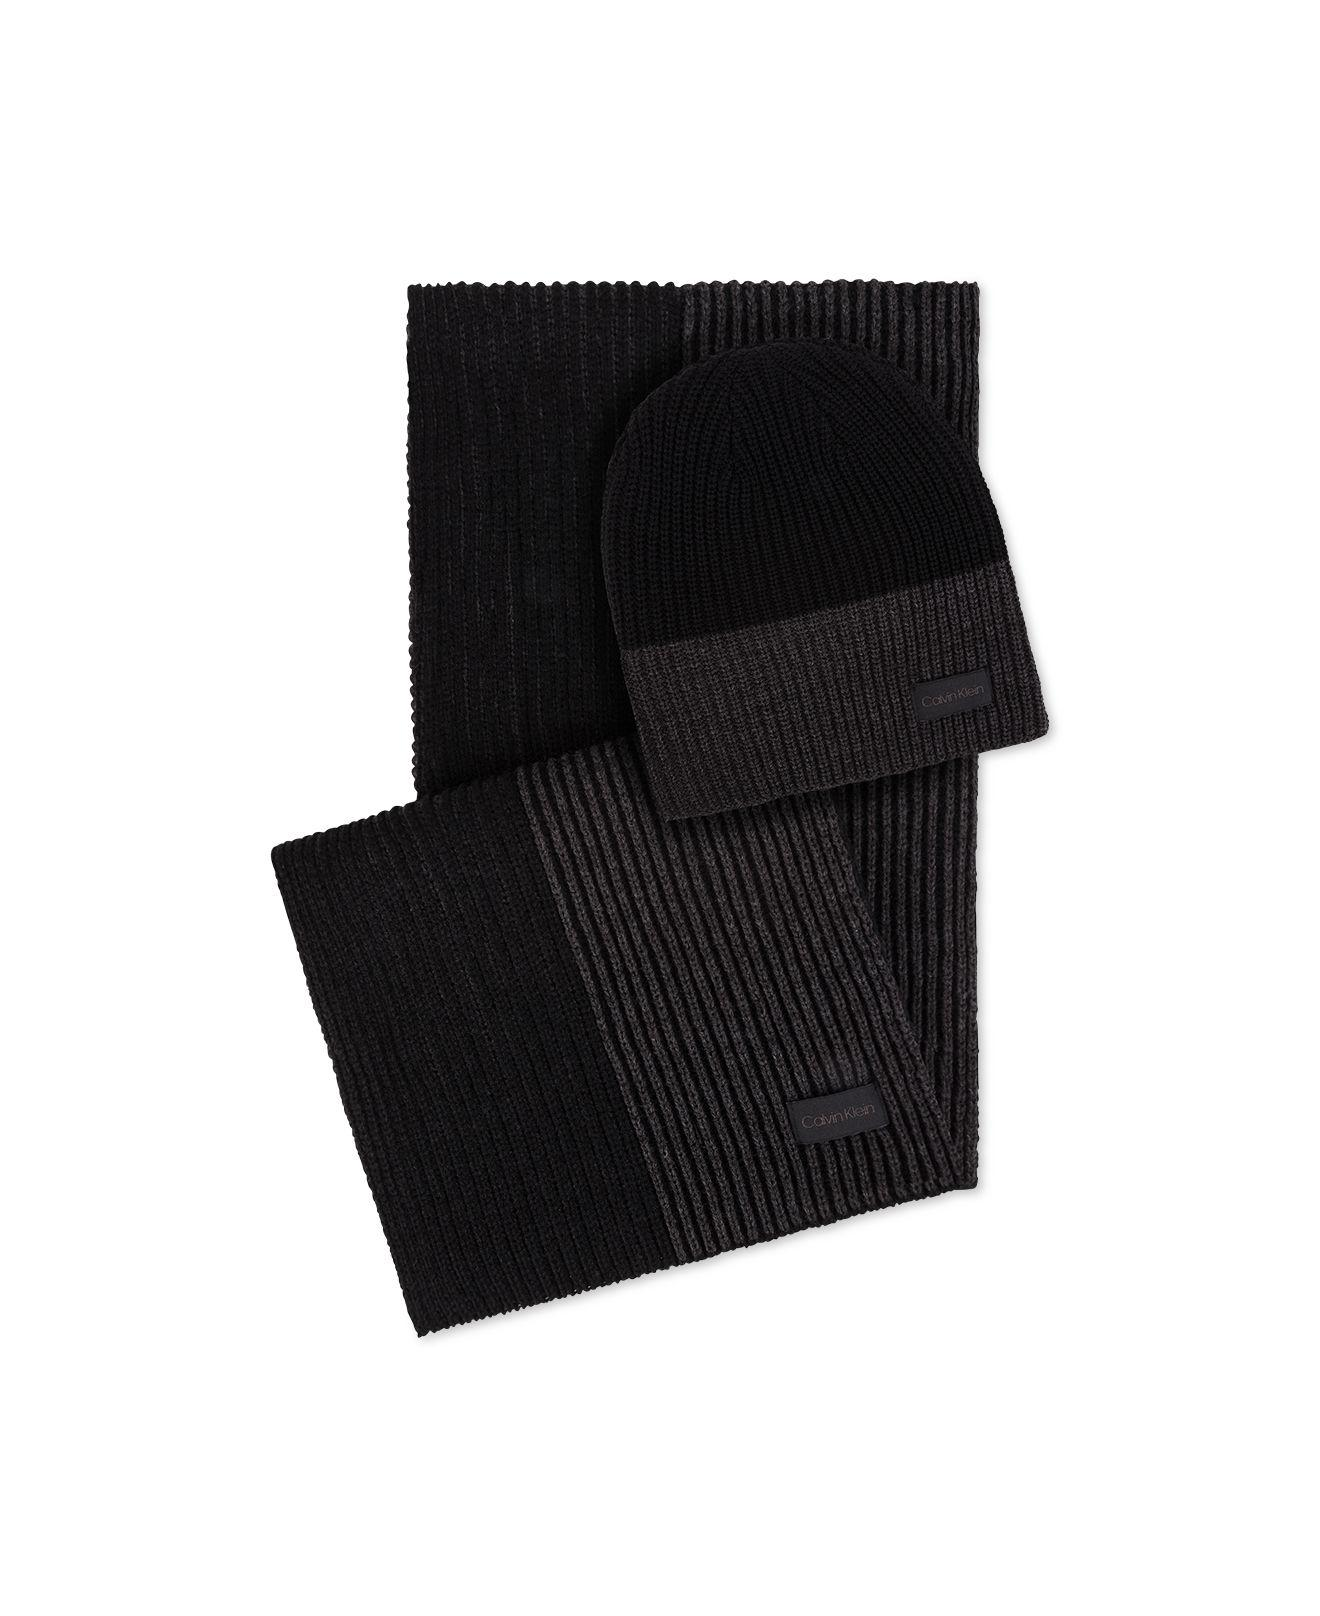 Calvin Klein - Black Men s Colorblocked Hat   Scarf Set for Men - Lyst.  View fullscreen f58746529a8